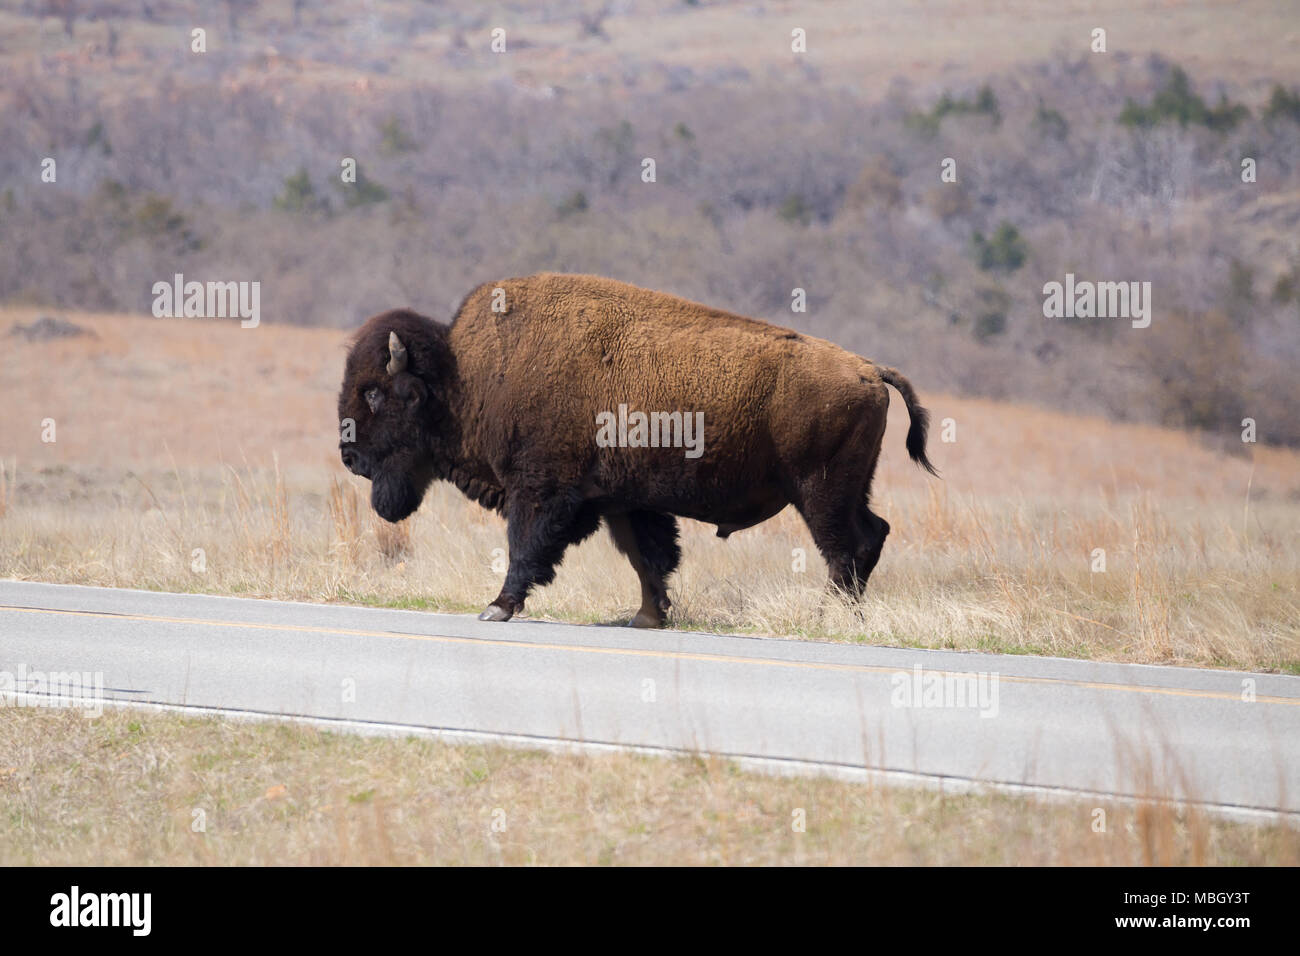 A large buffalo is crossing the road in Witchita Mountains Wildlife Reserve. - Stock Image